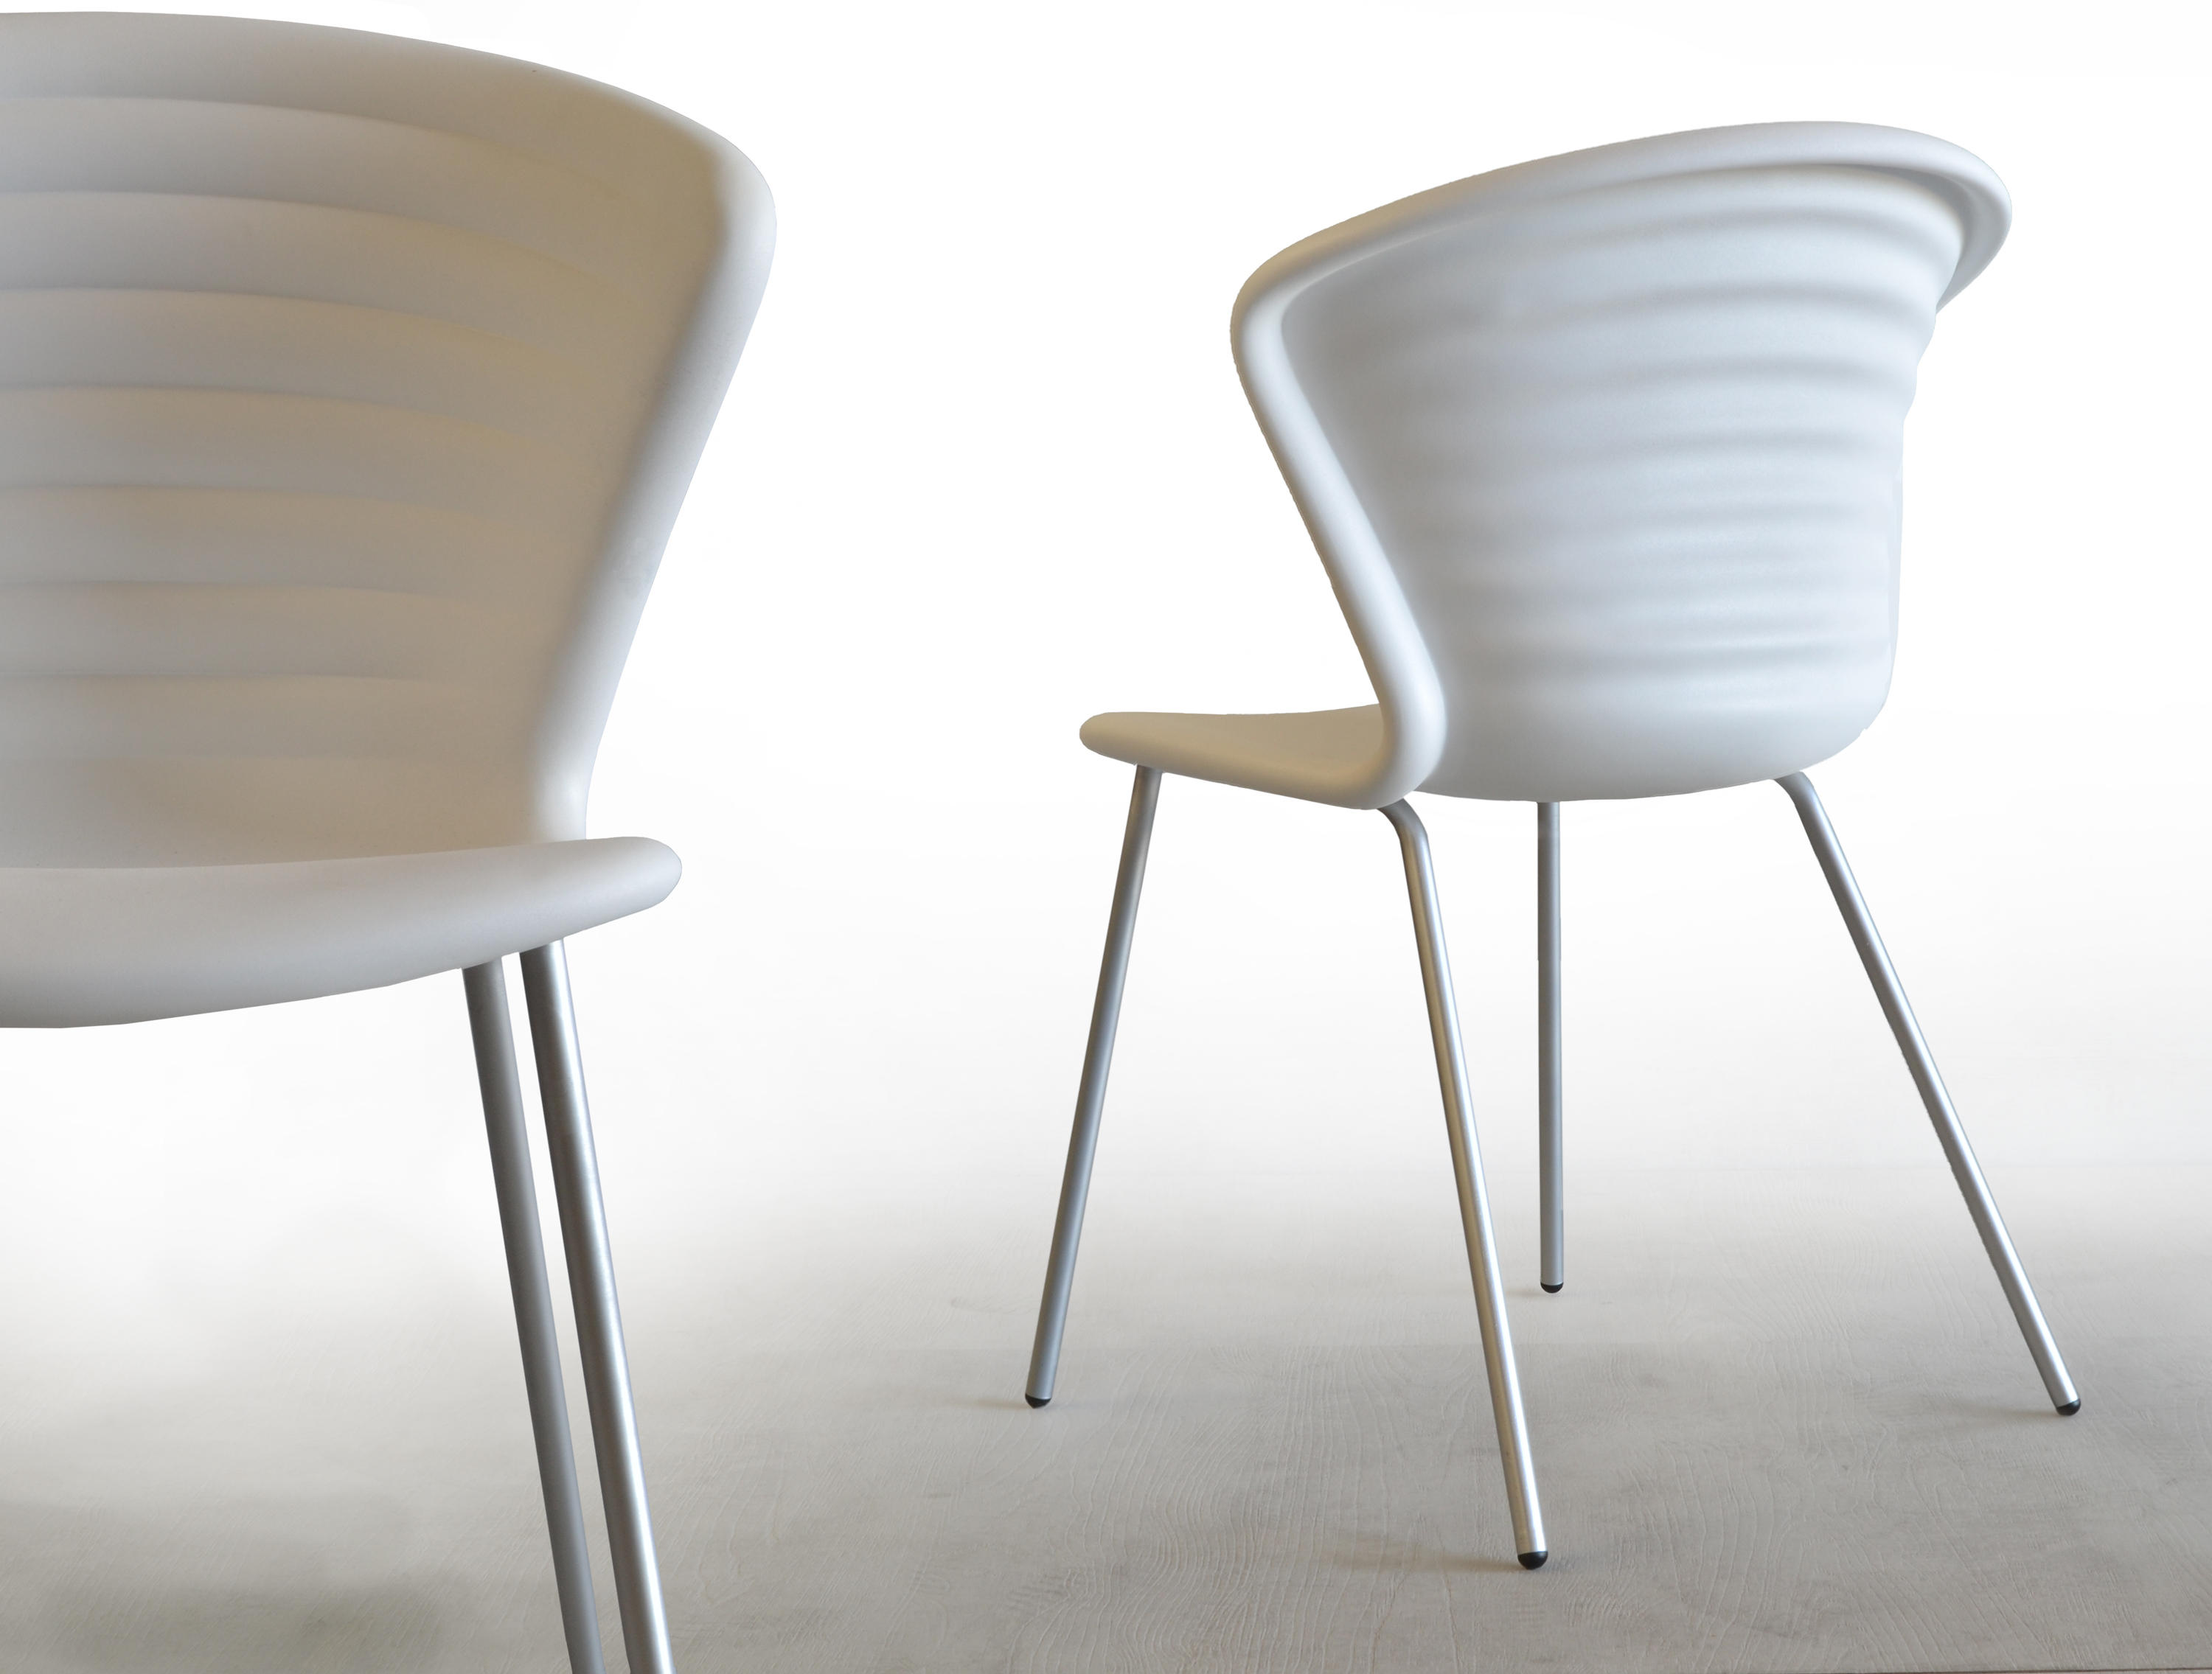 ... Marshmallow | 919.01 by Tonon | Chairs  sc 1 st  Architonic & MARSHMALLOW | 919.01 - Chairs from Tonon | Architonic